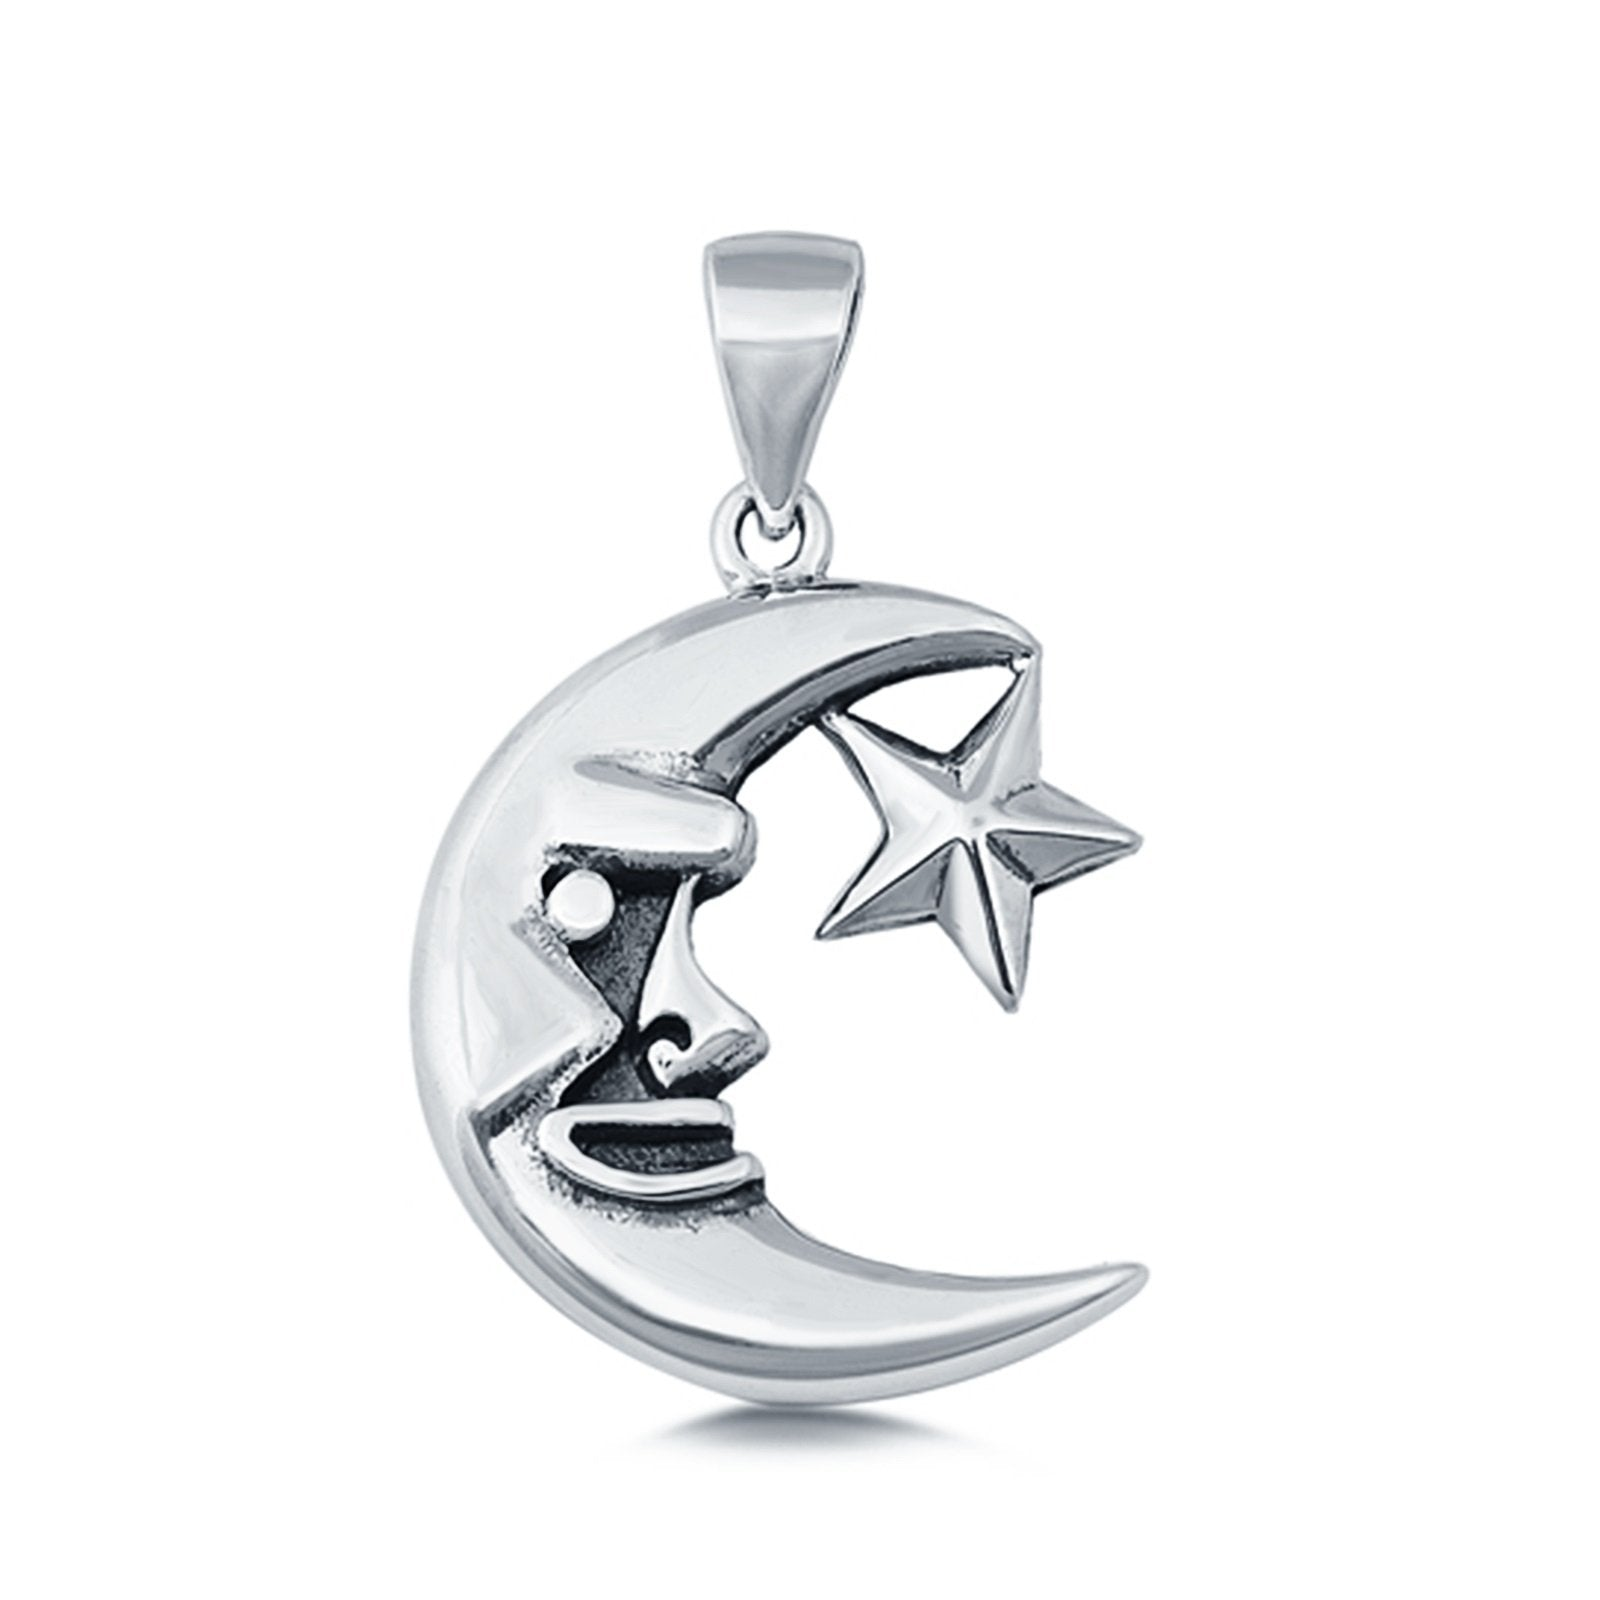 Sterling Silver Crescent Moon & Star Pendant Charm 925 Sterling Silver (19mm)